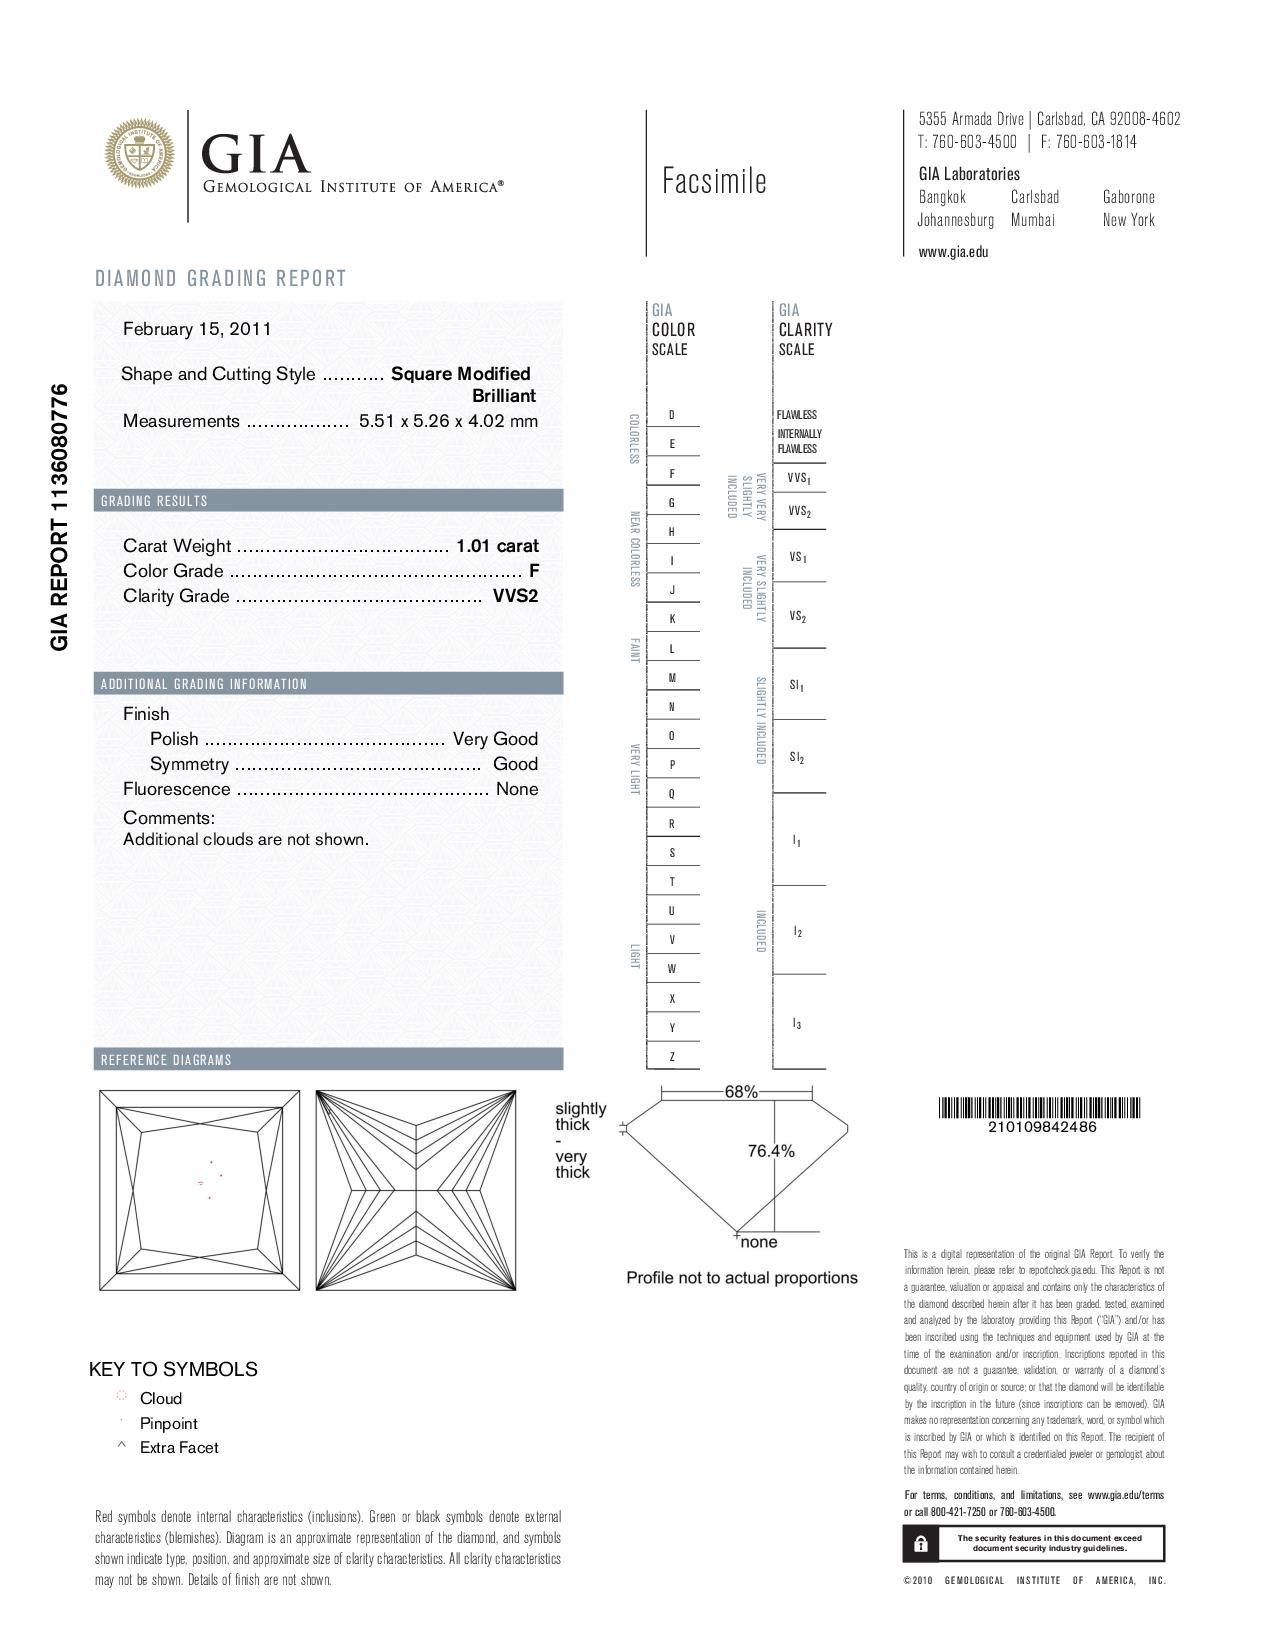 This is a 1.01 carat princess shape, F color, VVS2 clarity natural diamond accompanied by a GIA grading report.